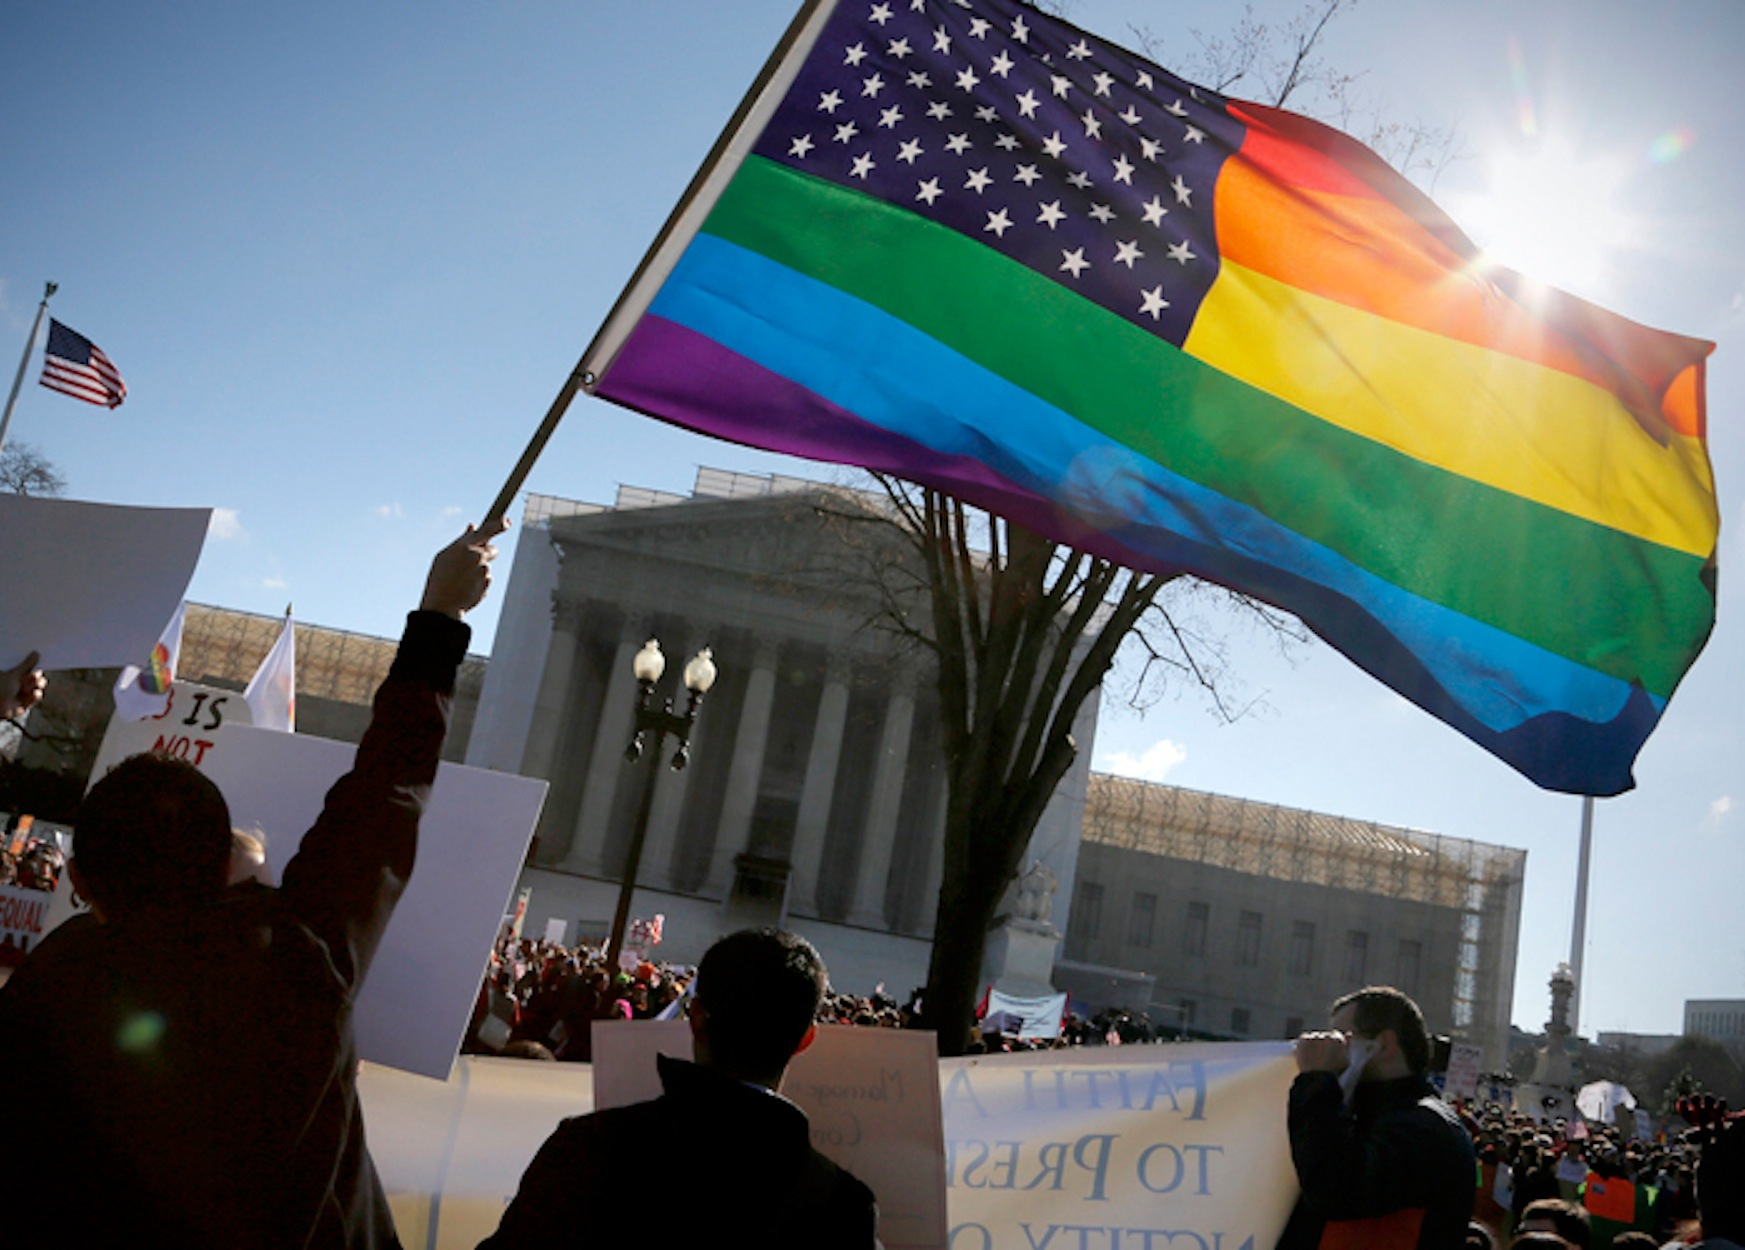 Pew Study: Media Coverage Overwhelmingly Pro-Gay Marriage